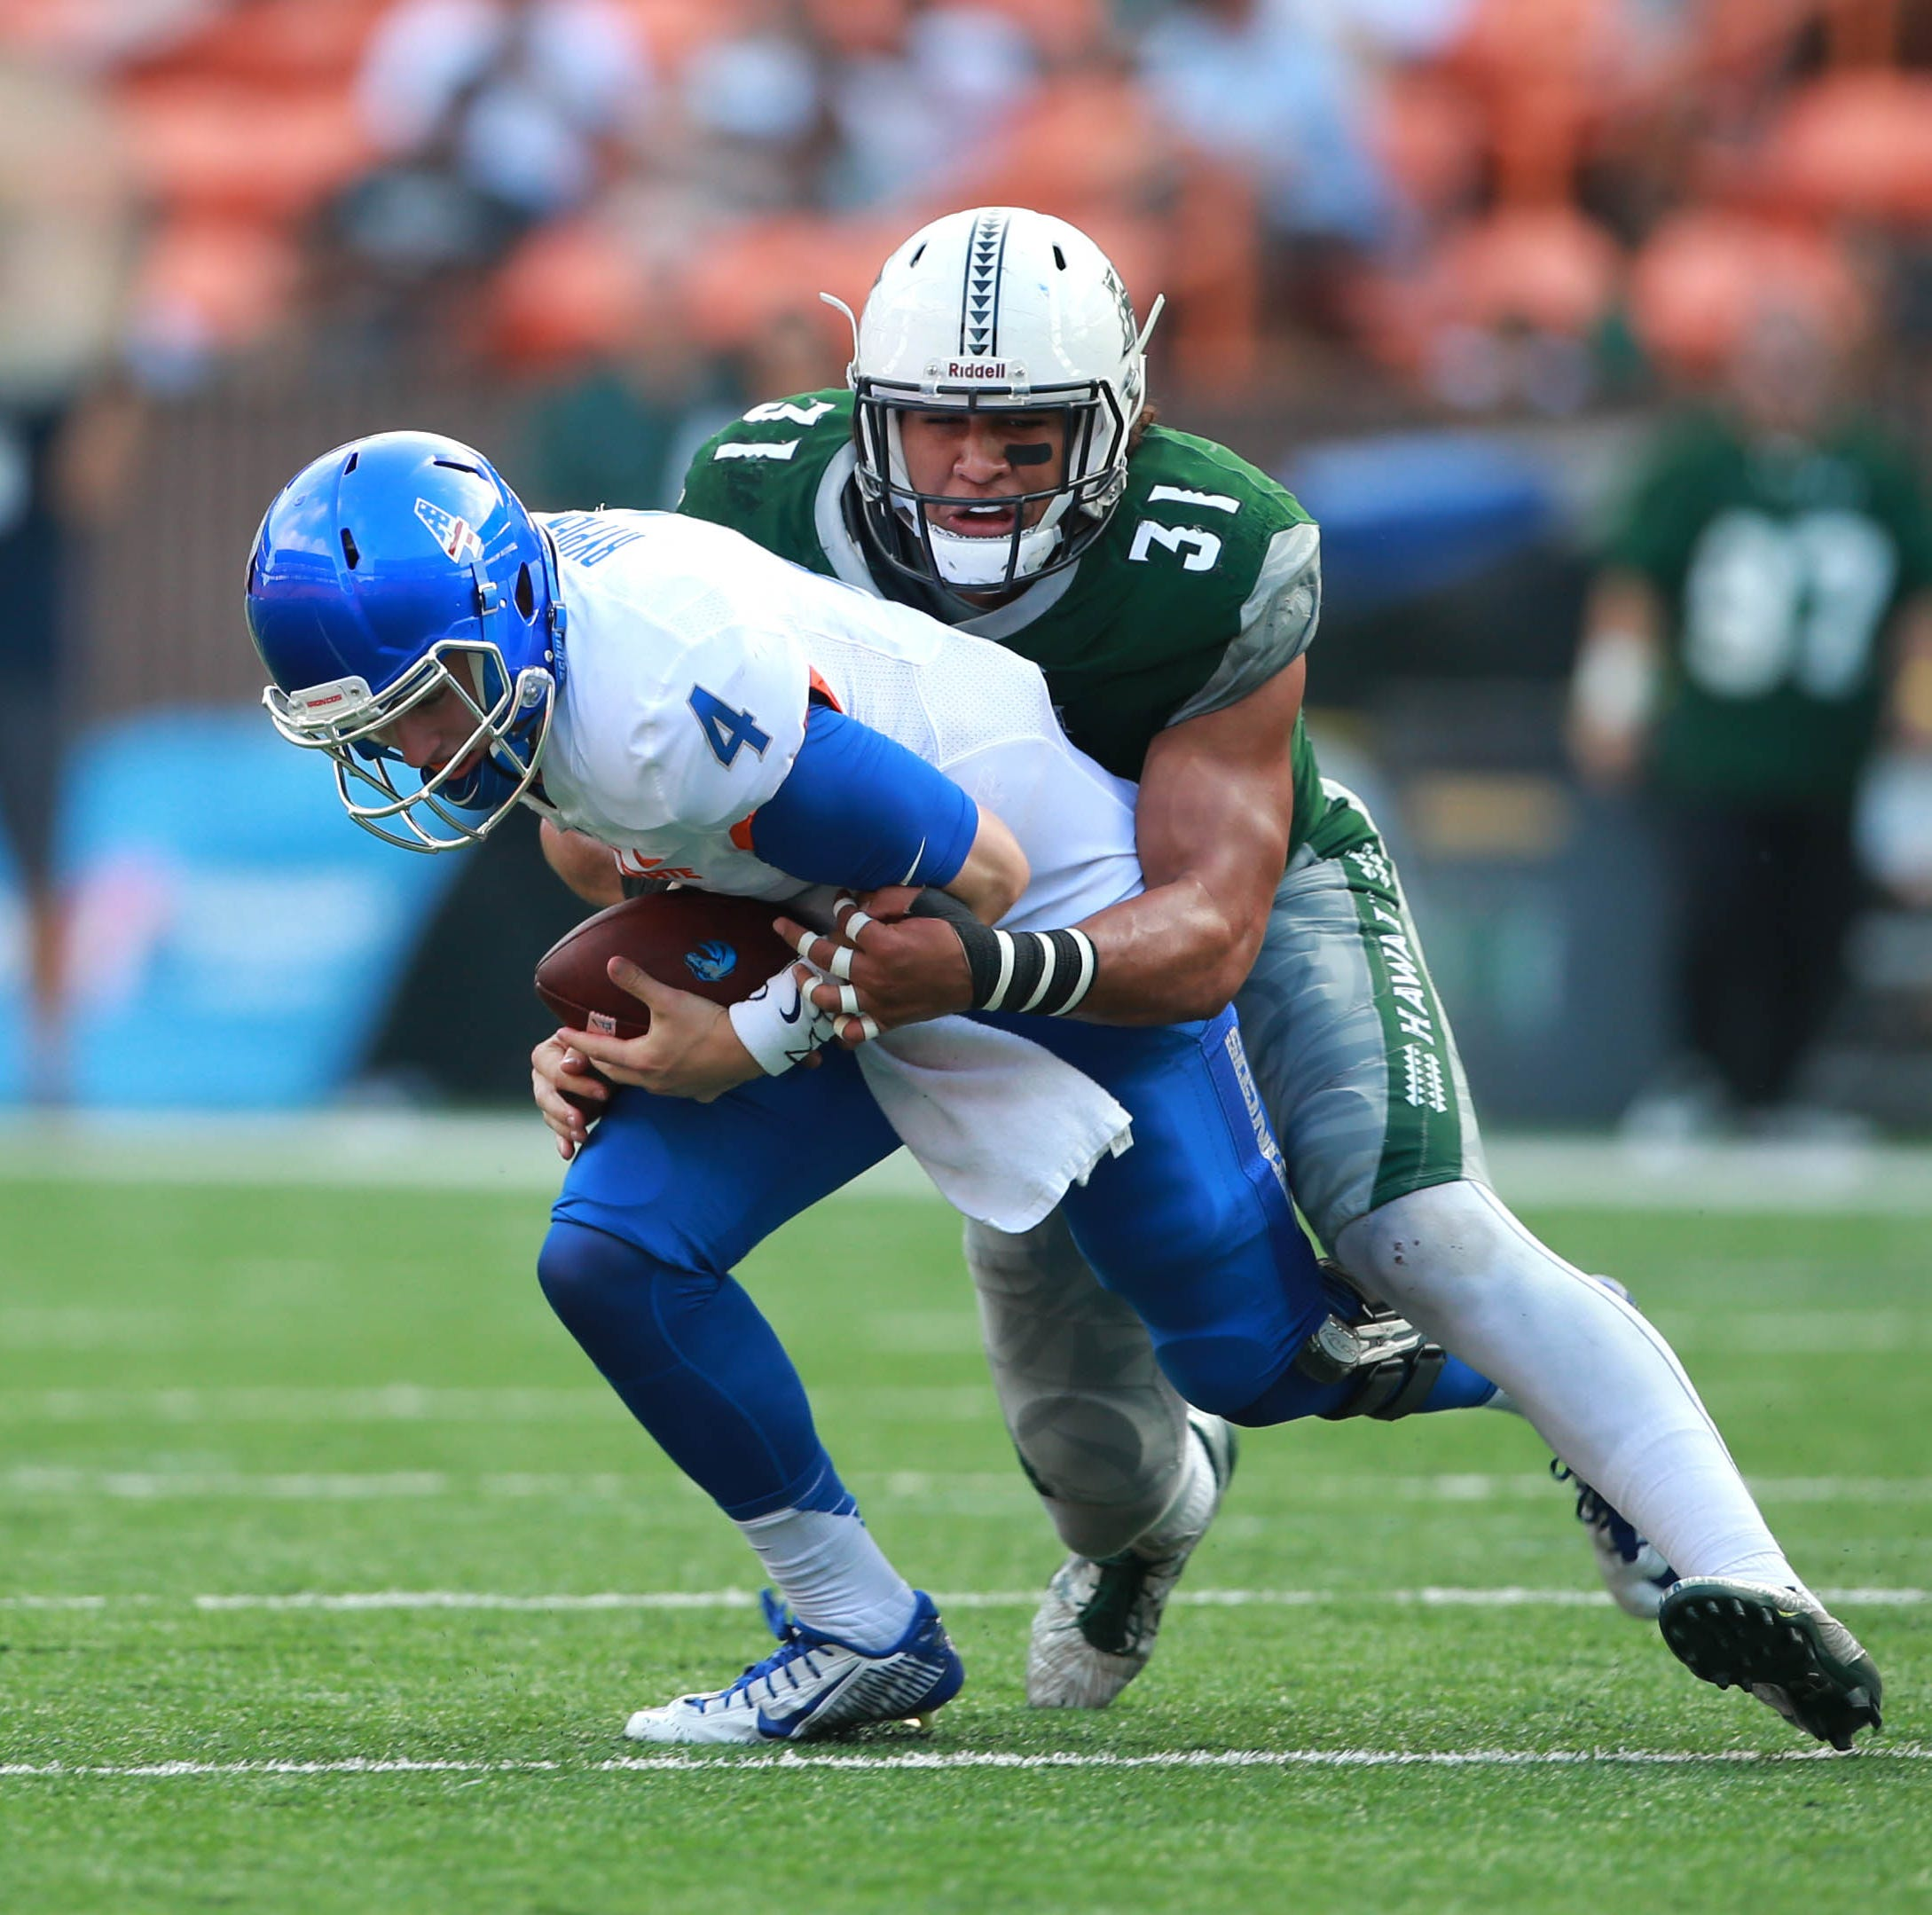 Detroit Lions take Hawaii LB Jahlani Tavai in Round 2 of 2019 NFL draft